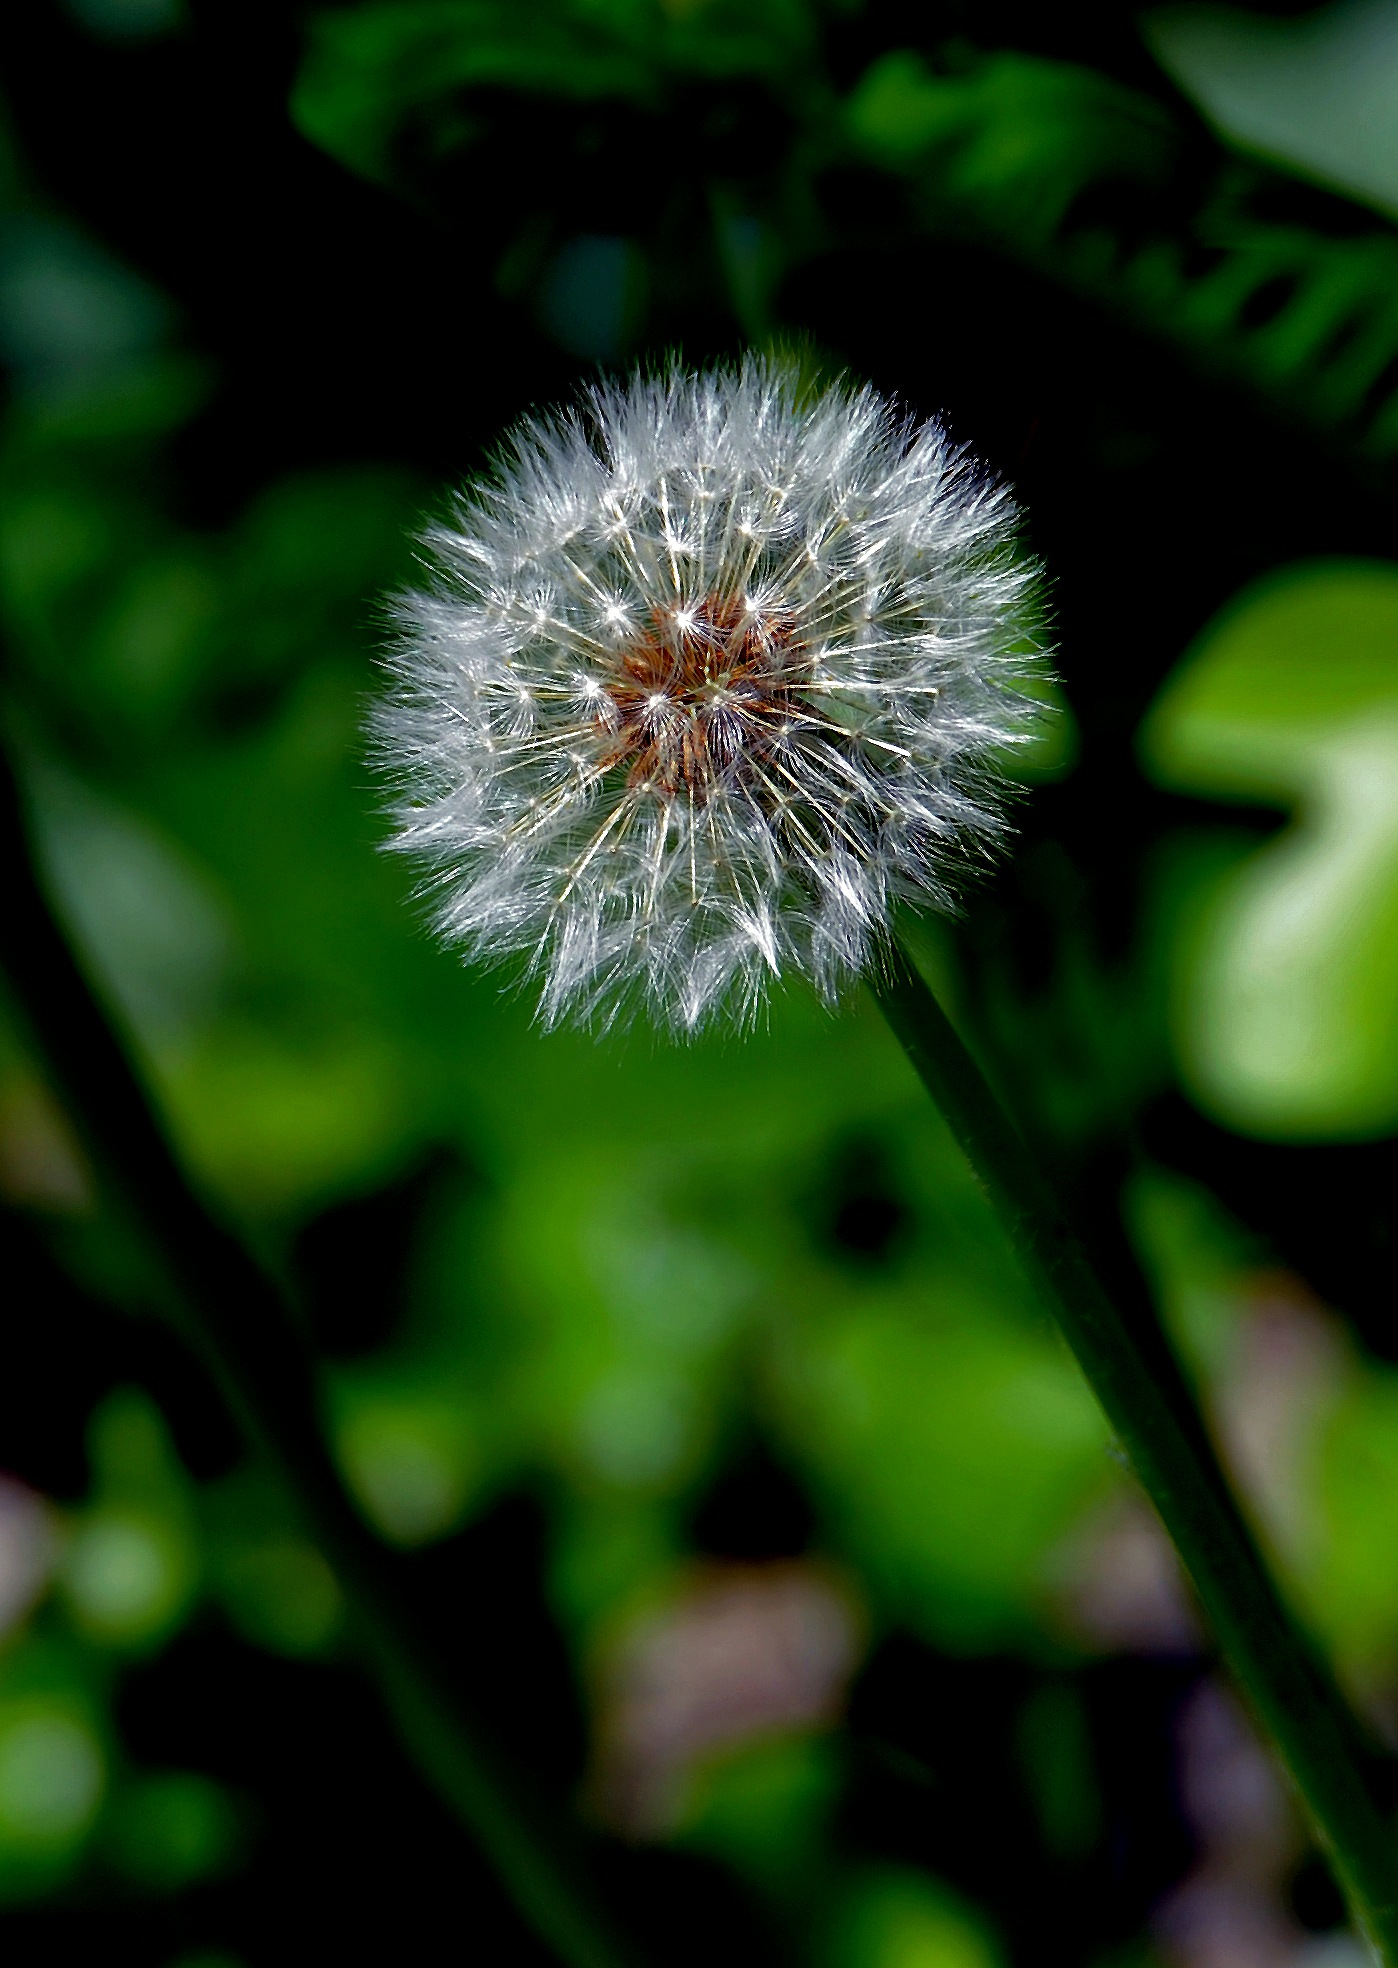 Just Dandy by PeterMChambers